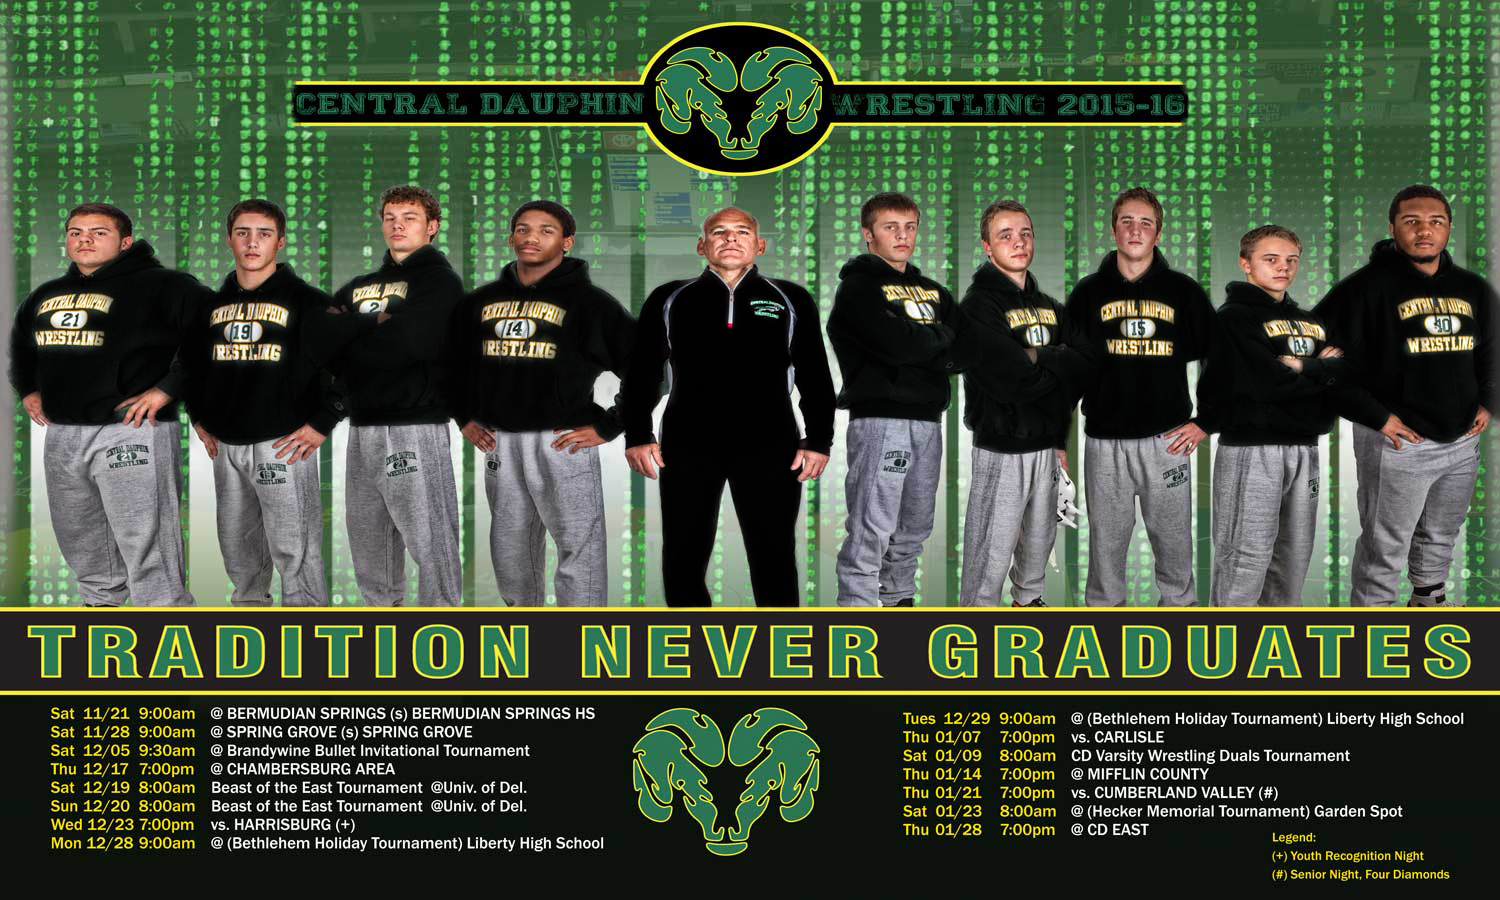 Central Dauphin Wrestling poster 2015-2016